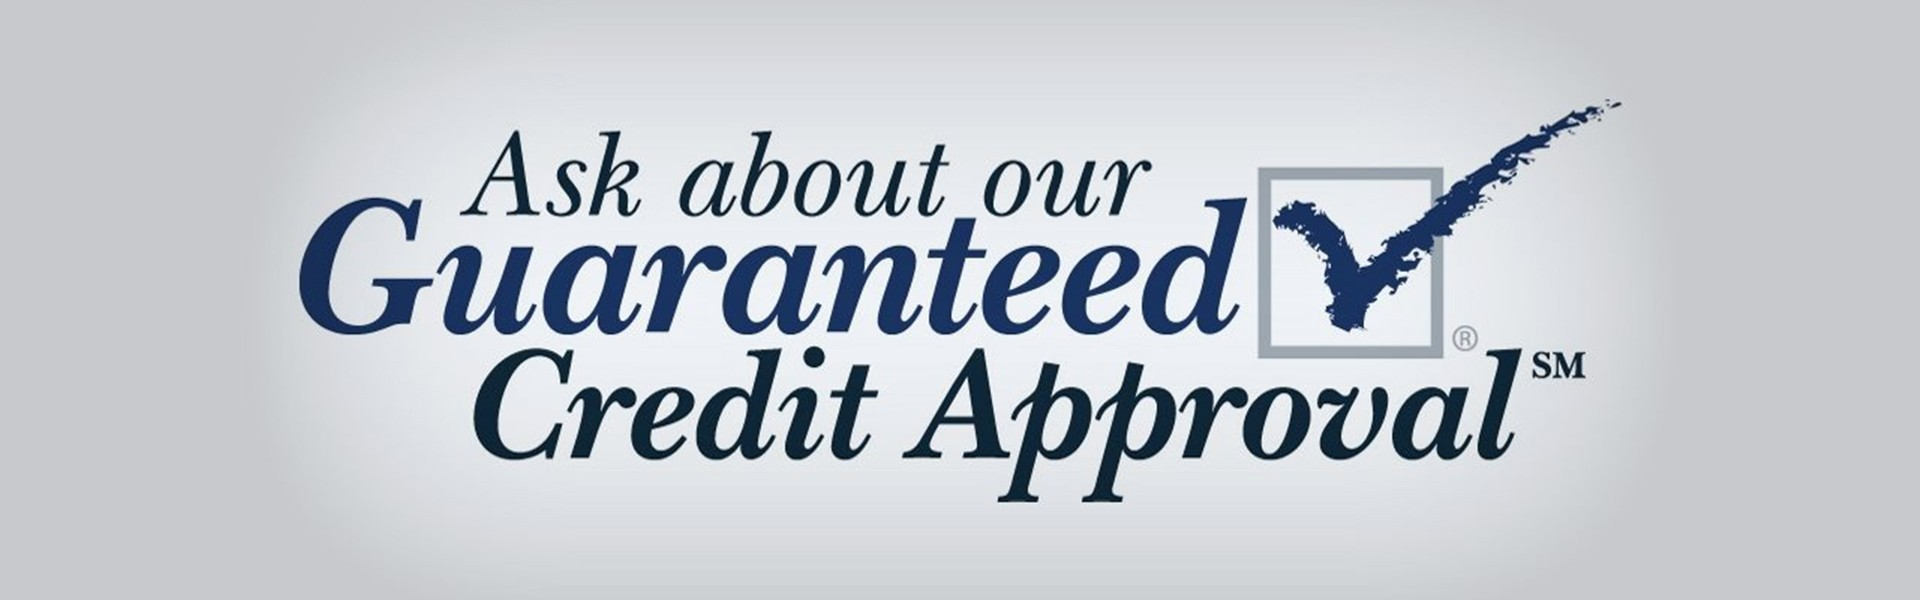 Ask About our Guaranteed Credit Approval